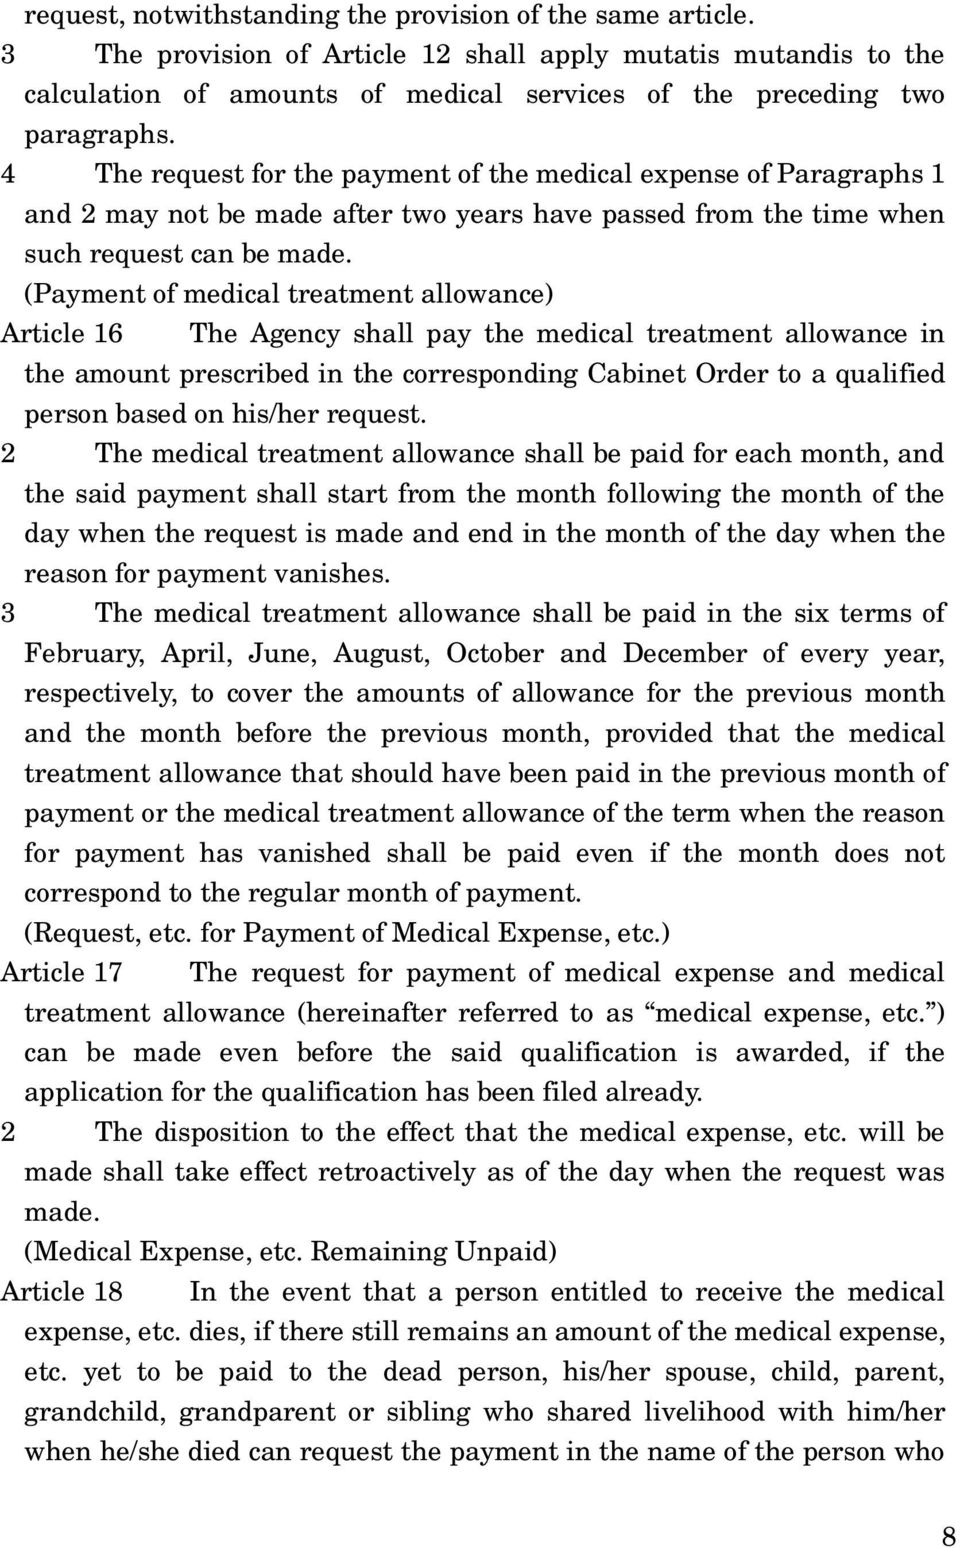 4 The request for the payment of the medical expense of Paragraphs 1 and 2 may not be made after two years have passed from the time when such request can be made.